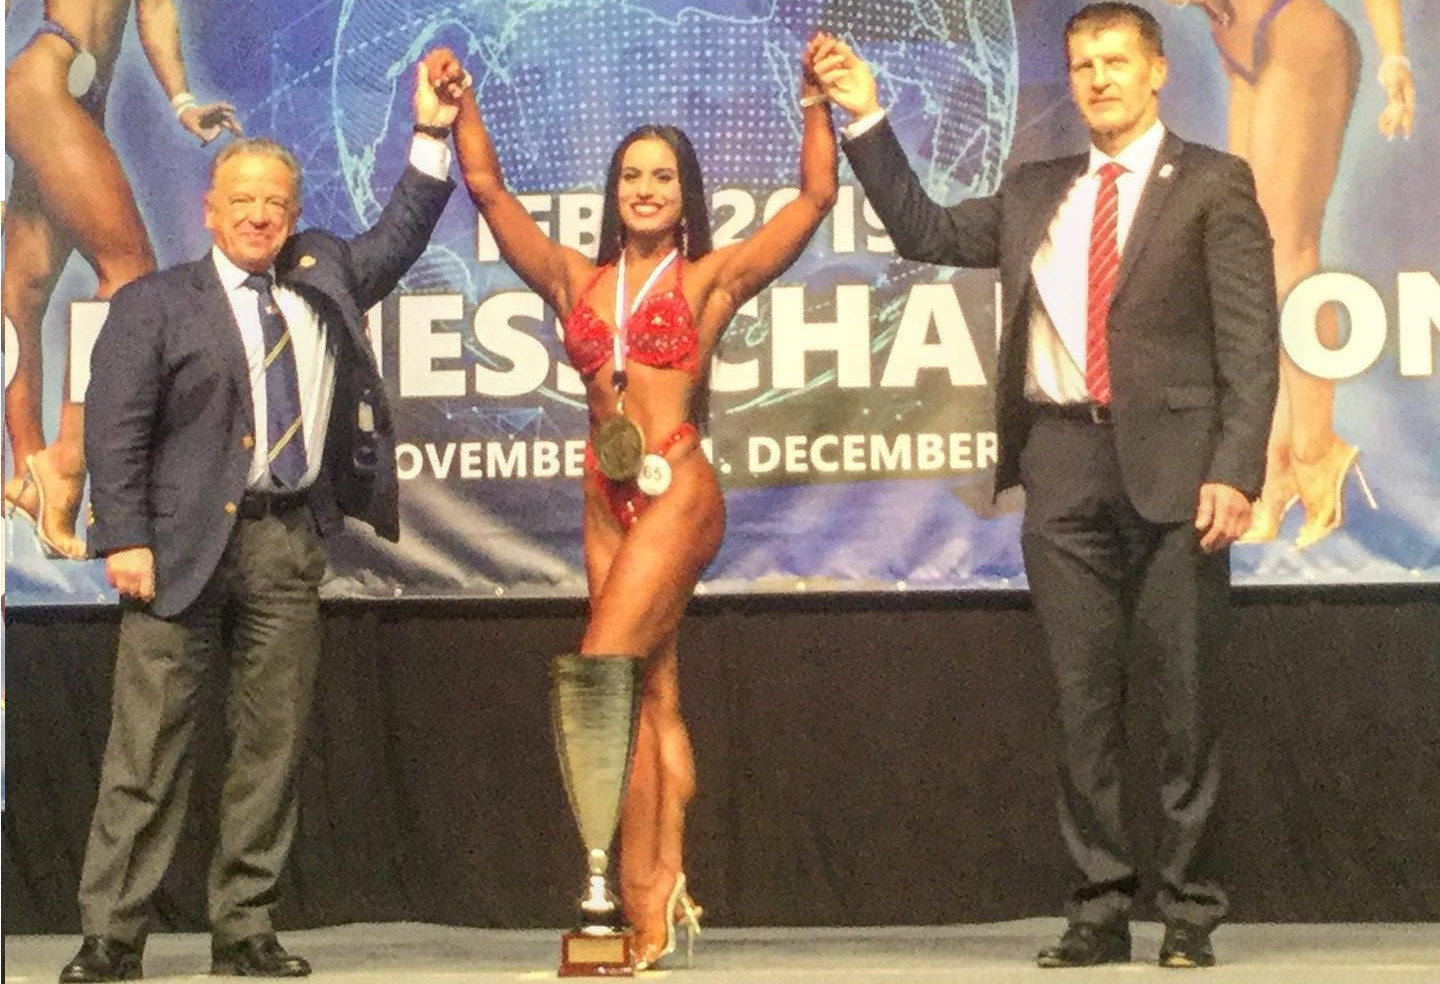 insidethegames is reporting LIVE from the IFBB 2019 World Fitness Championships in Bratislava